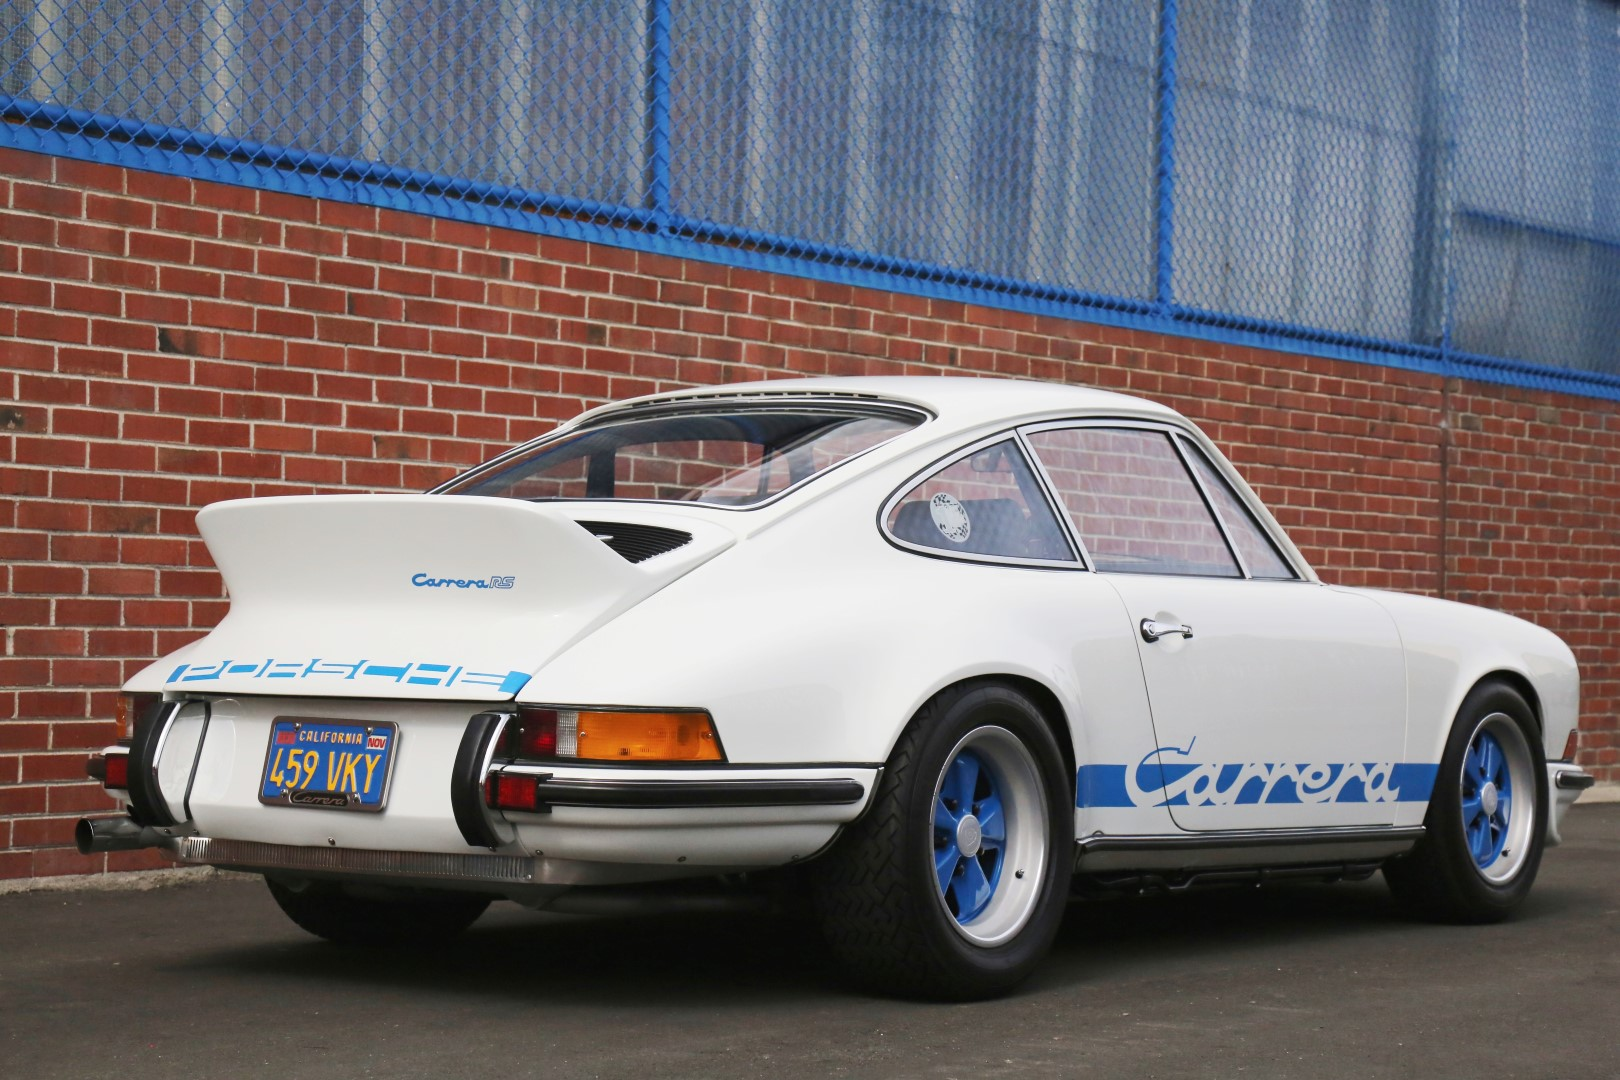 Porsche-911-Carrera-RS-2.7-1973-for-sale-12